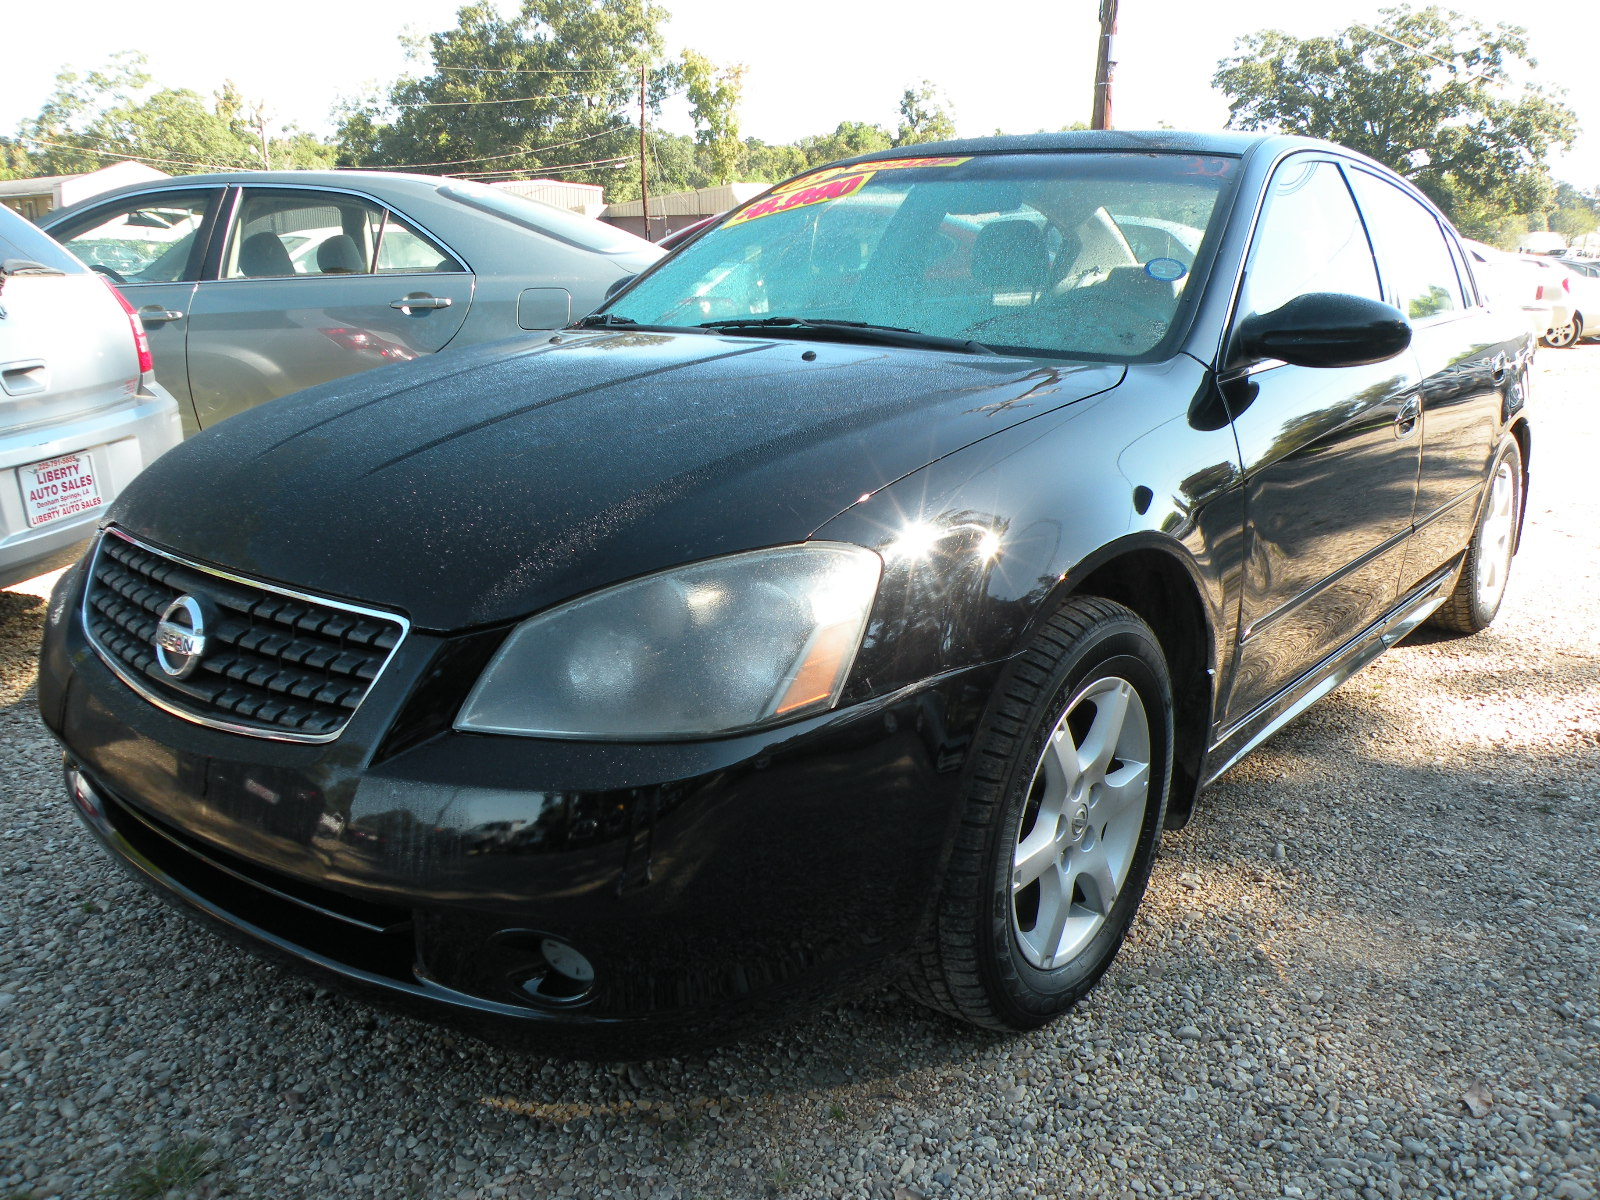 2005 nissan altima 2 5 related infomation specifications weili automotive network. Black Bedroom Furniture Sets. Home Design Ideas